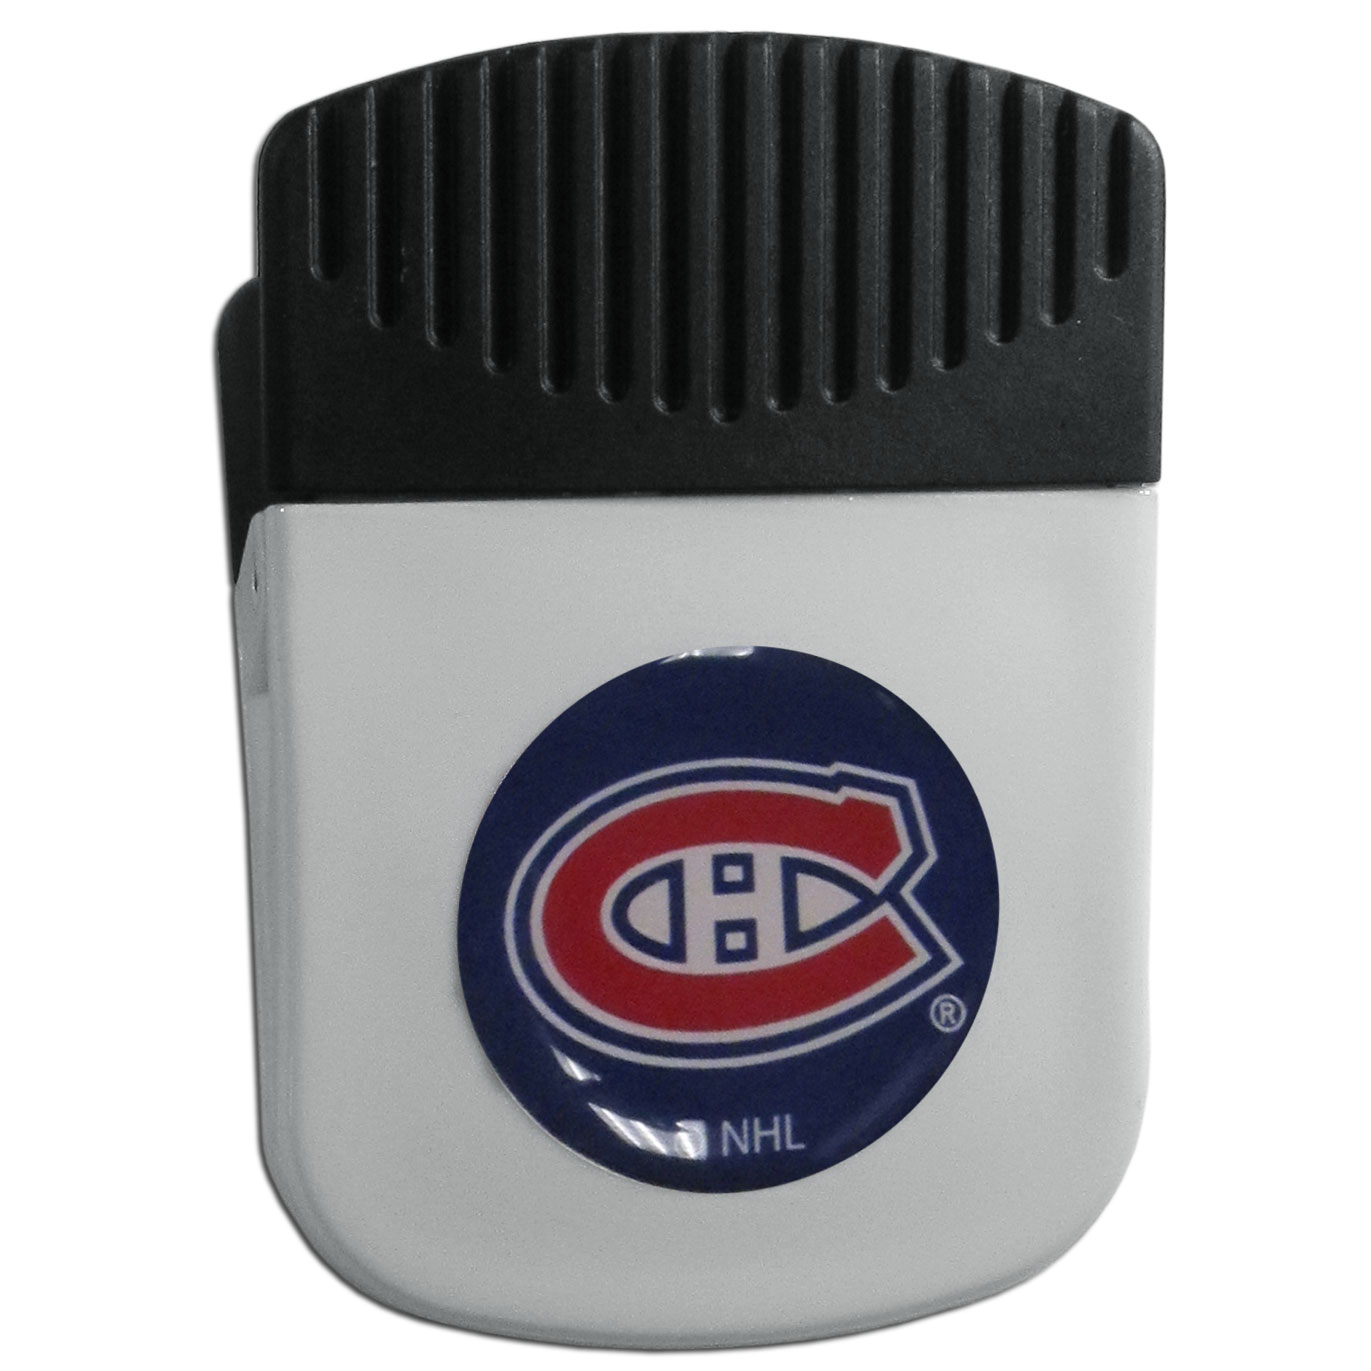 Montreal Canadiens® Chip Clip Magnet - Use this attractive clip magnet to hold memos, photos or appointment cards on the fridge or take it down keep use it to clip bags shut. The magnet features a domed Montreal Canadiens® logo.